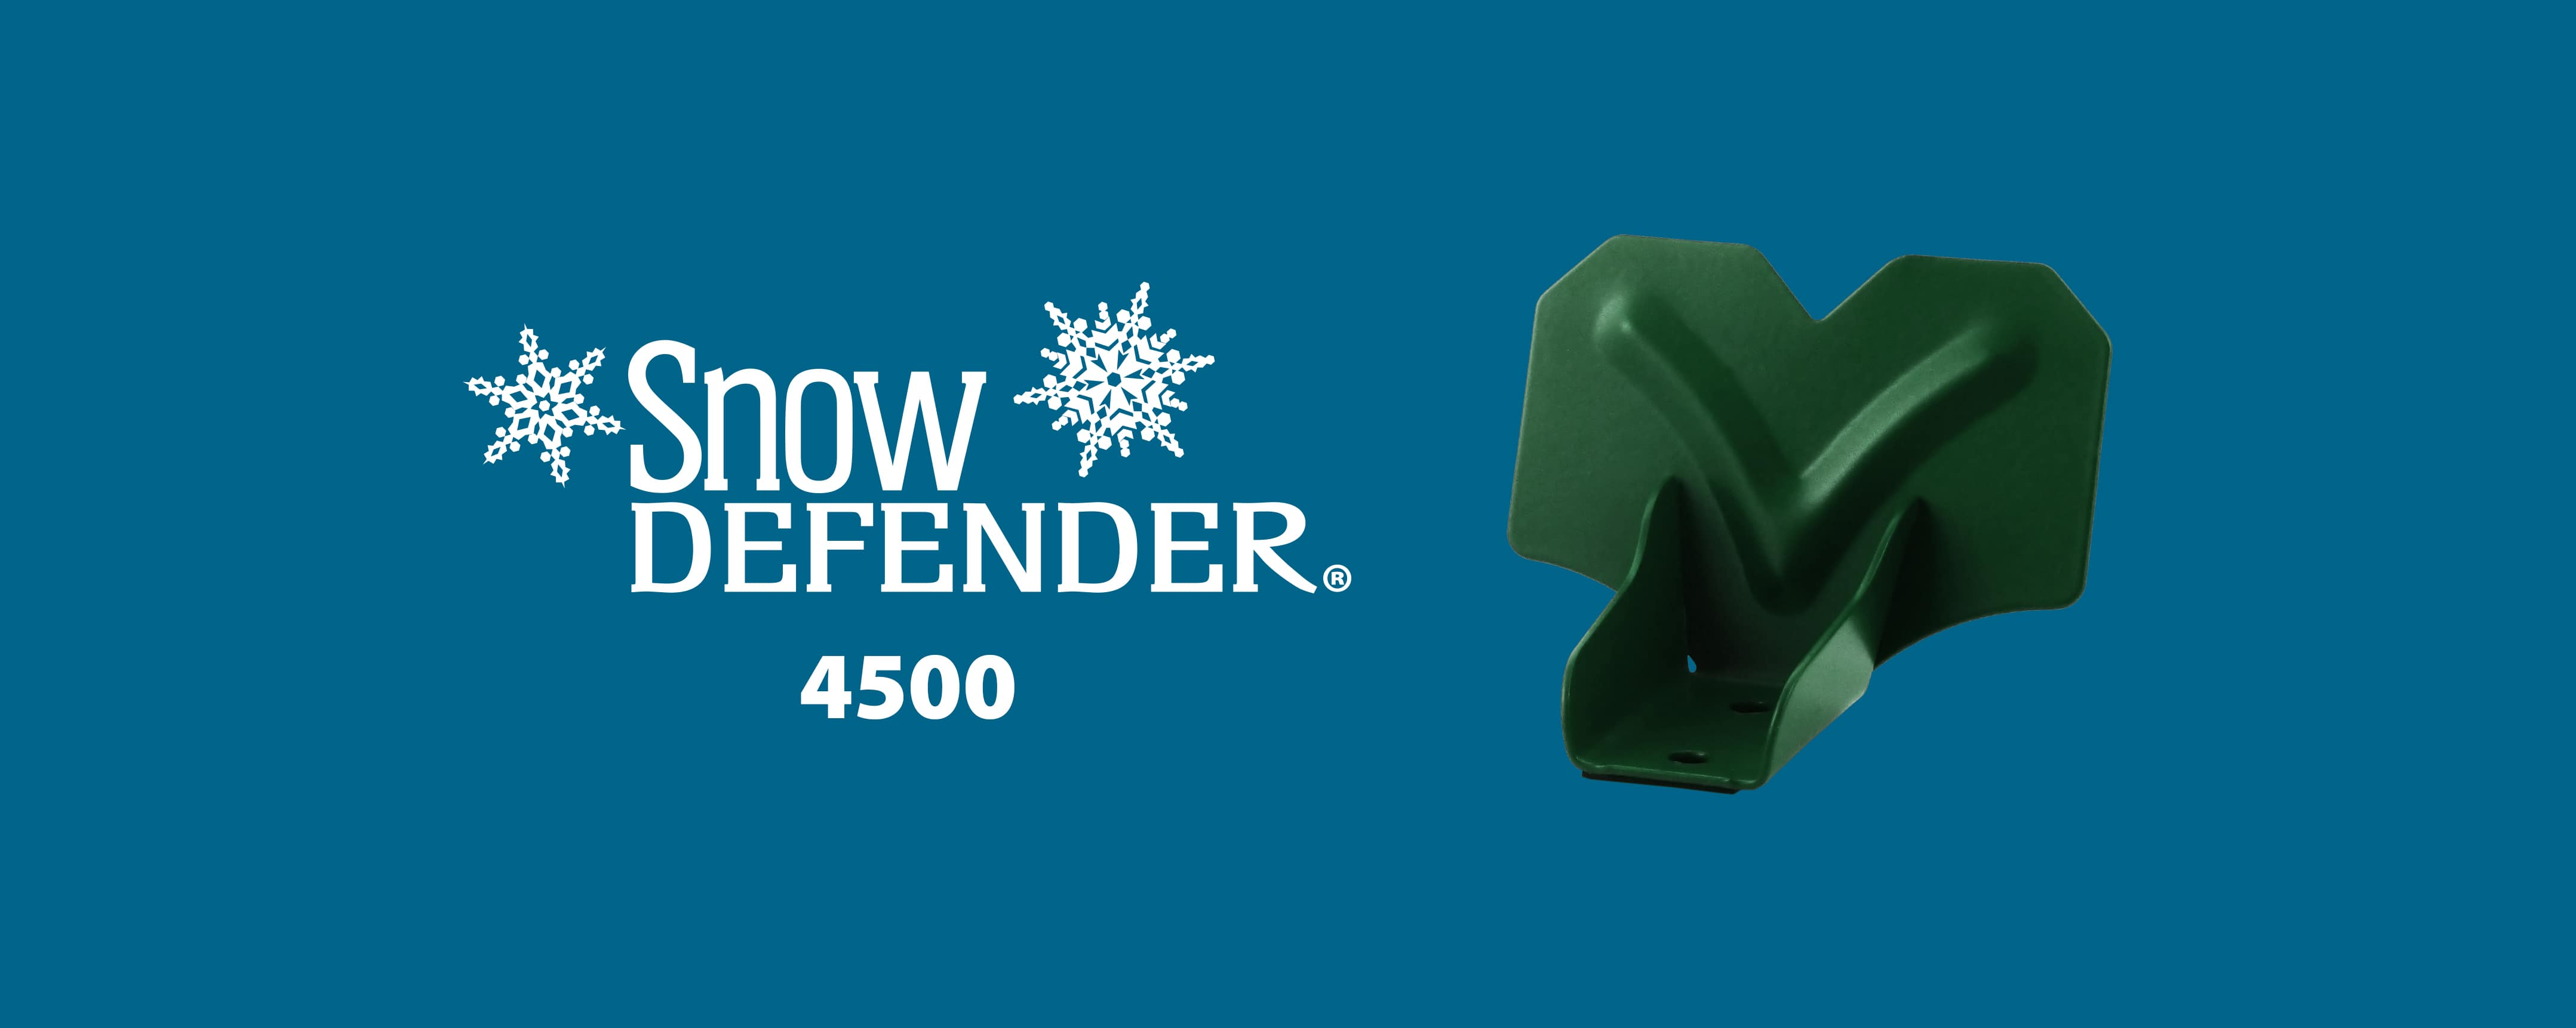 Snow Defender snow guard 4500 for metal roofing and metal panel